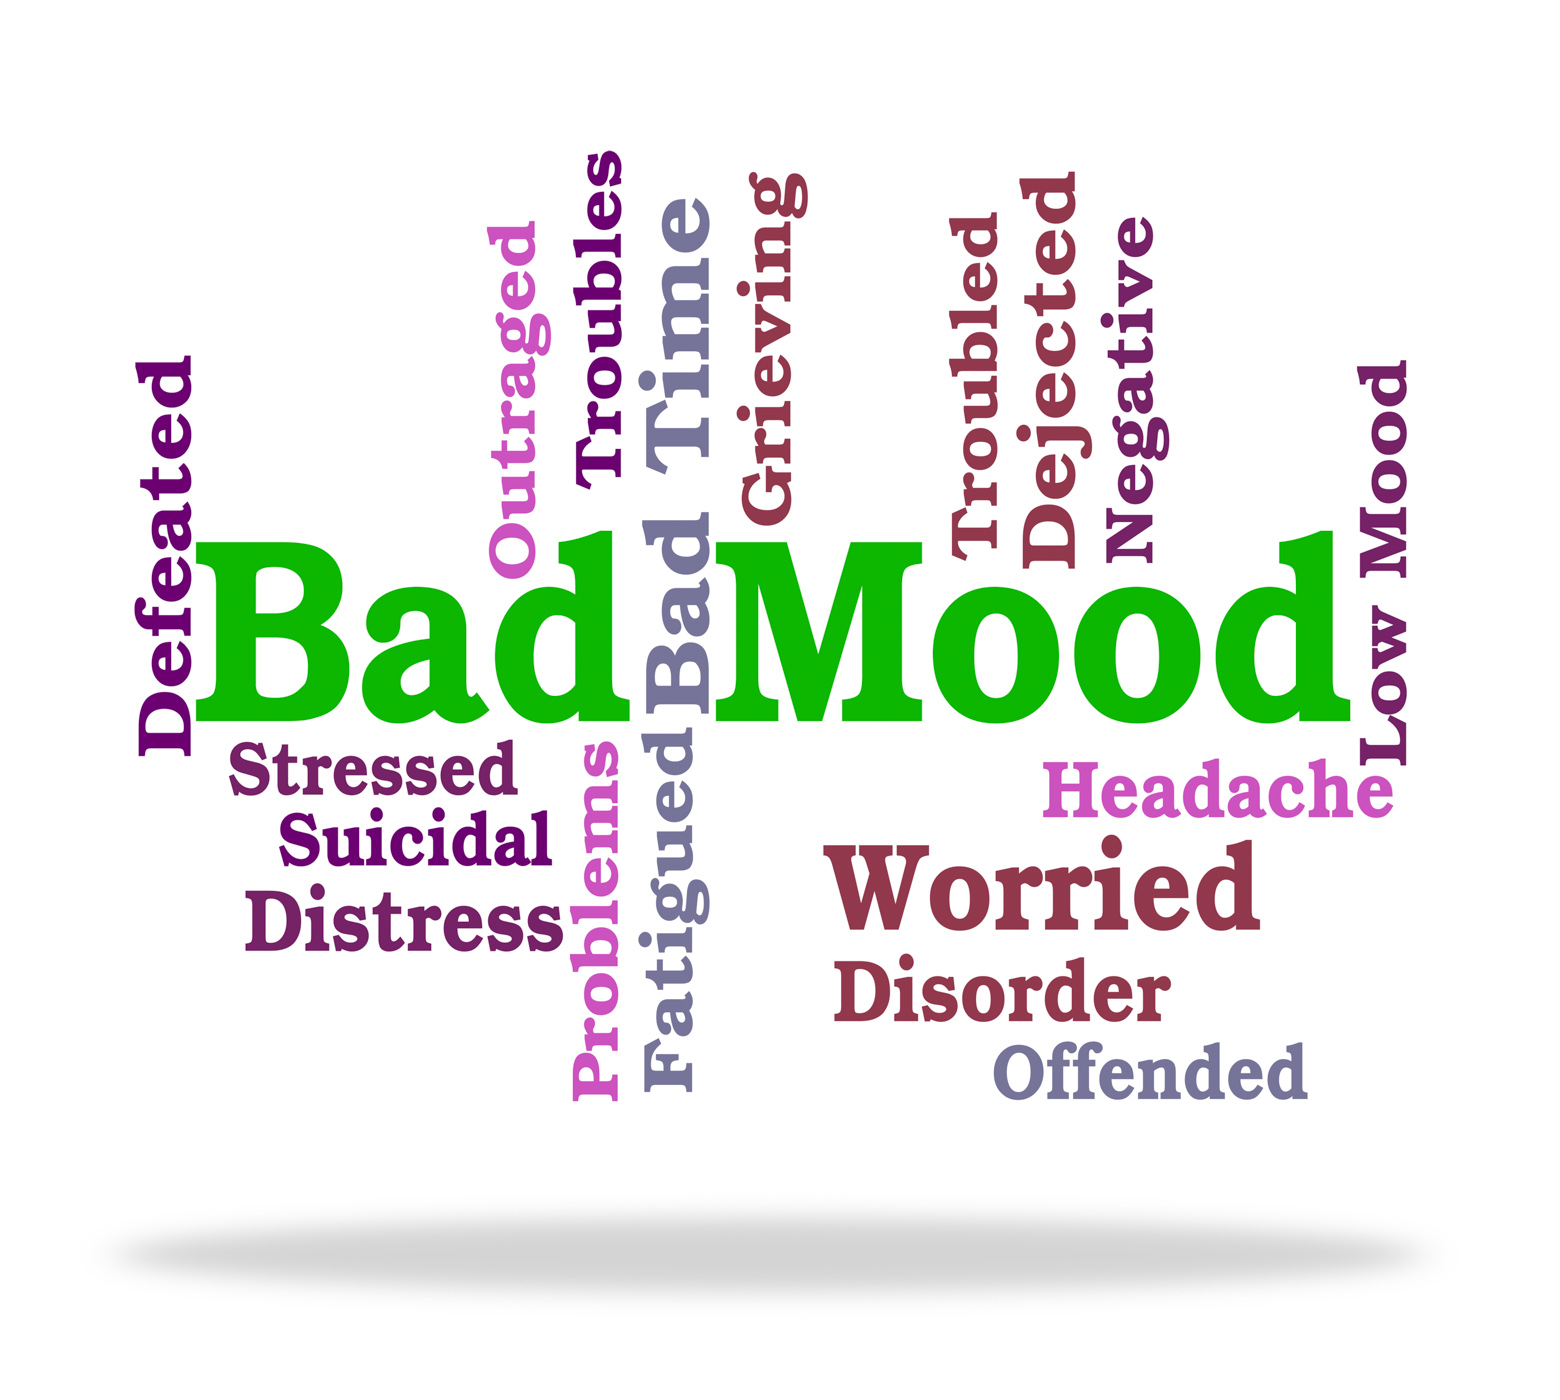 Bad mood shows somber words and depression photo